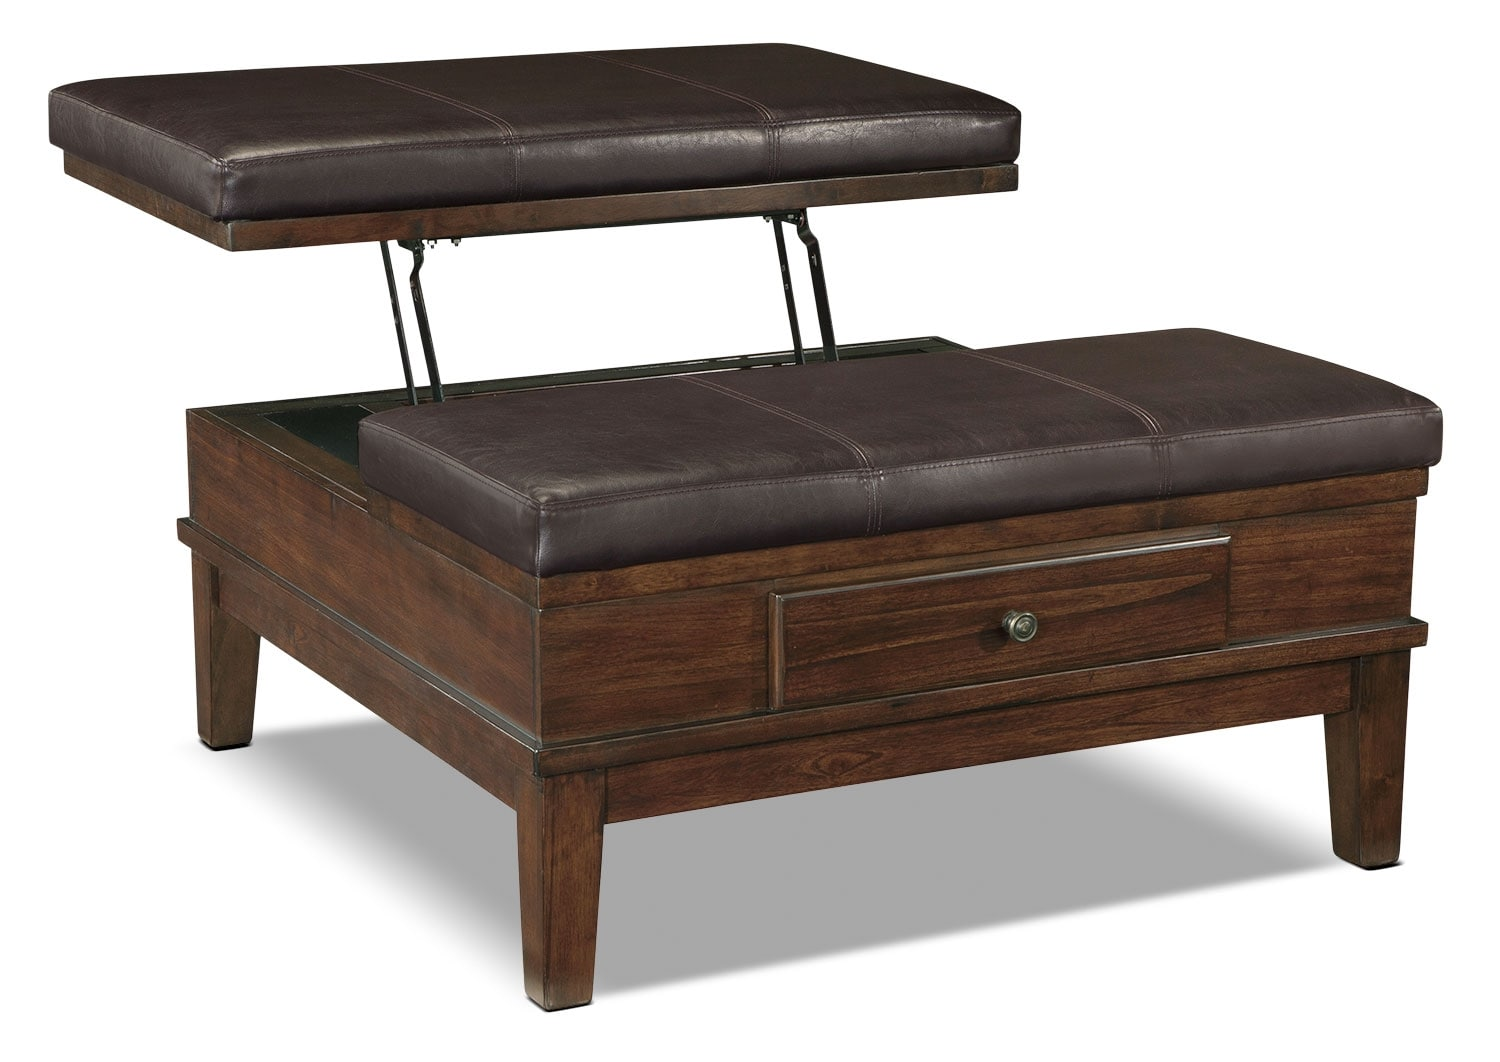 Gately Ottoman Coffee Table With Lift Top United Furniture Warehouse